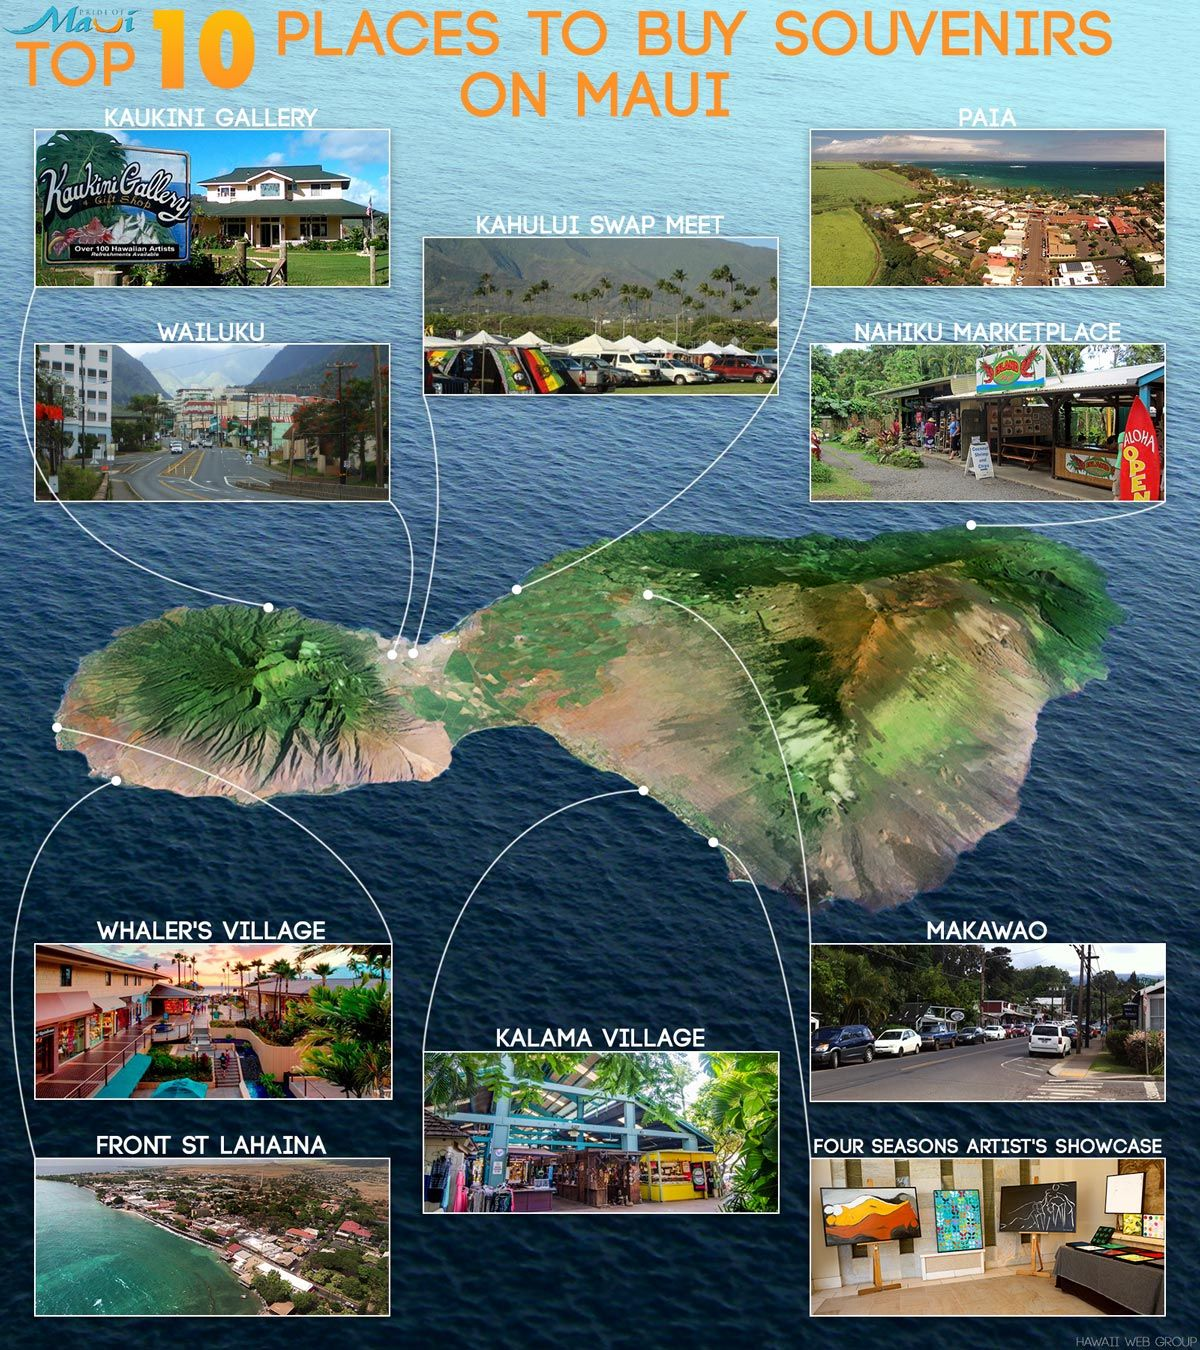 Best Places For Cheap Holiday: Top 10 Places To Buy Souvenirs On Maui